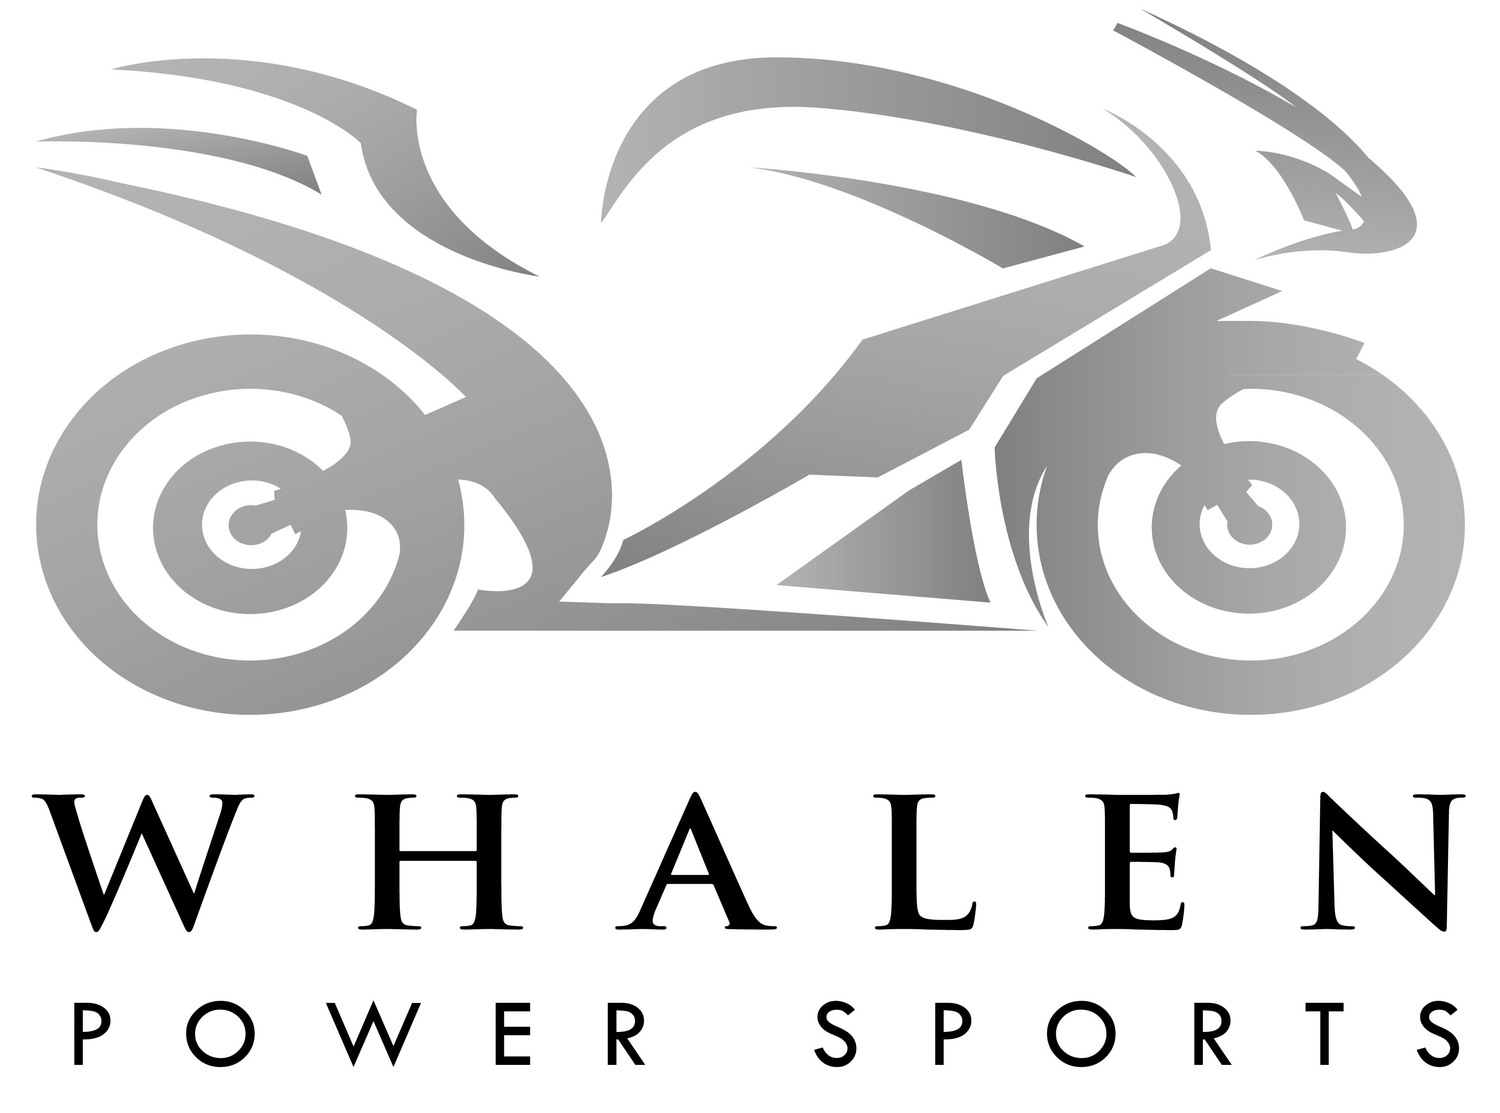 Motorcycle Dealer | Fort Myers, Port Charlotte, Naples - Whalen Powersports